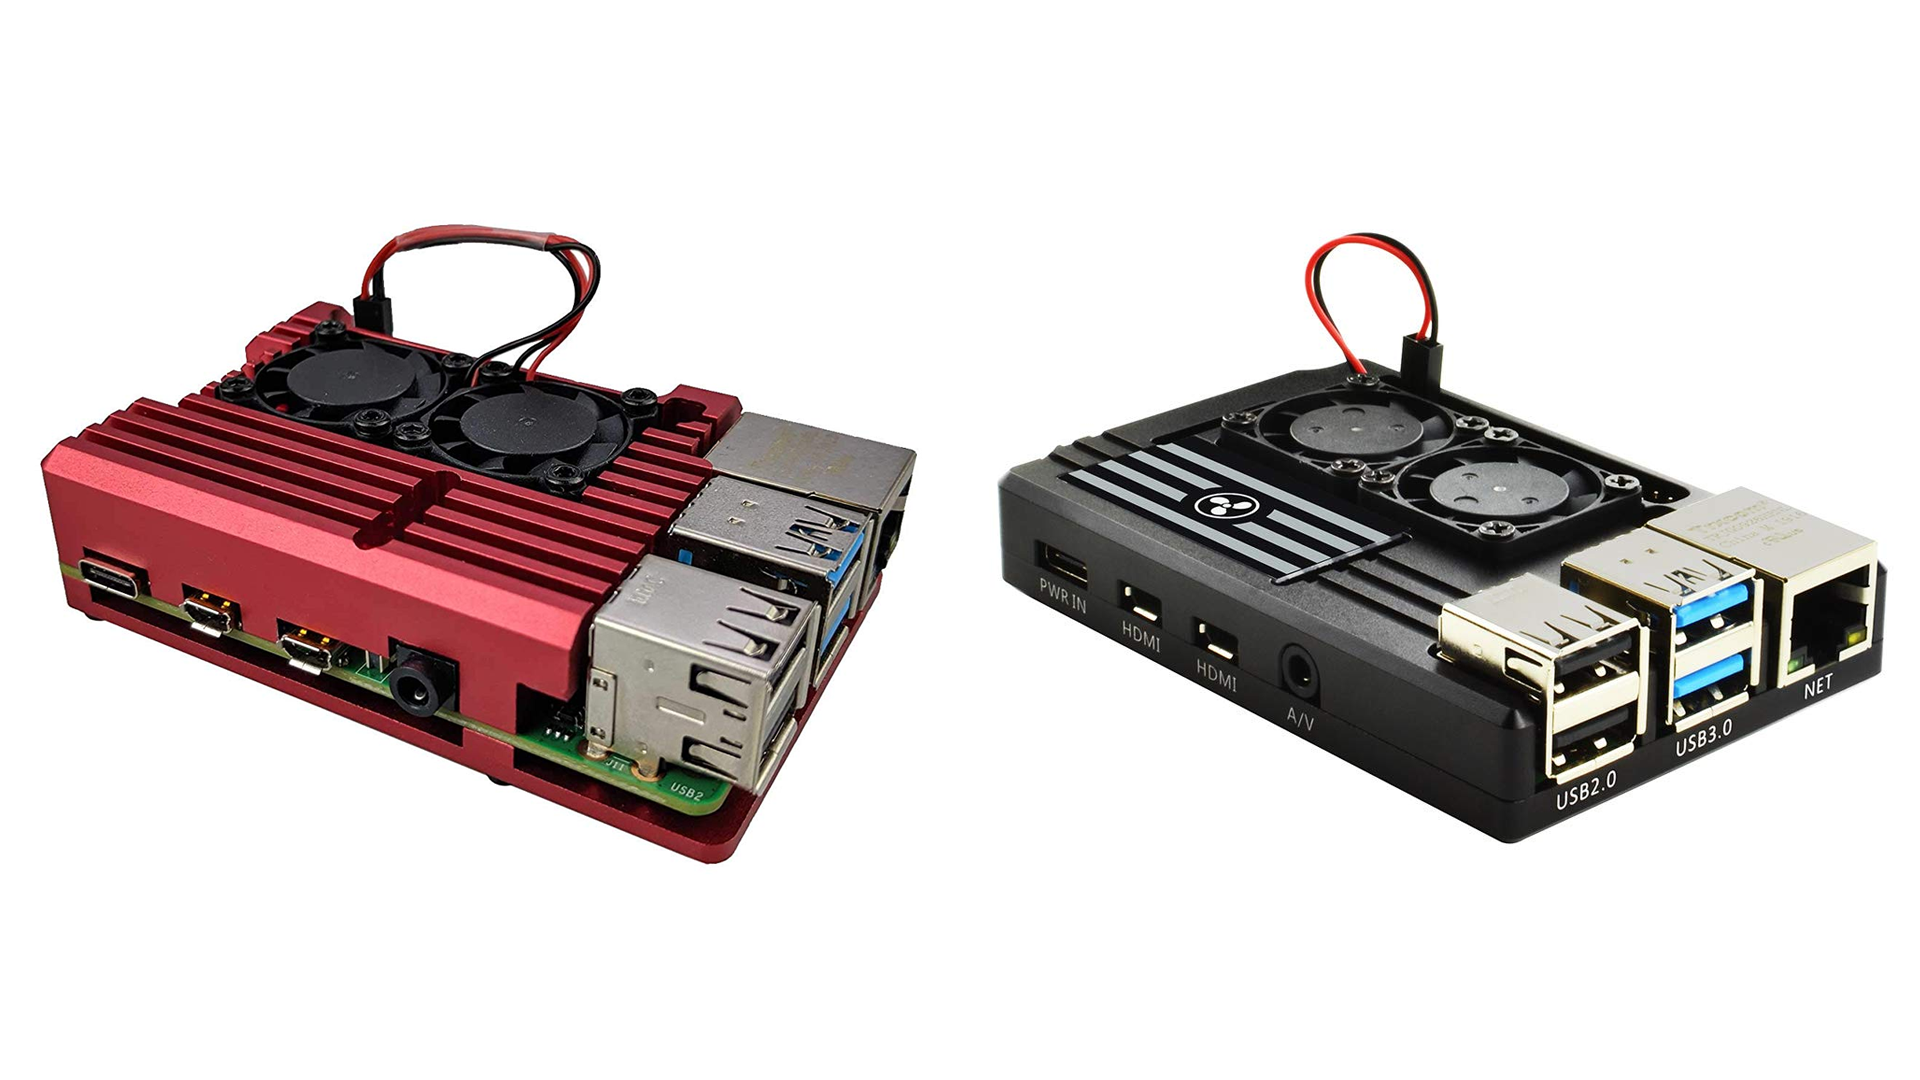 The Eleduino and Artik cooling Pi cases